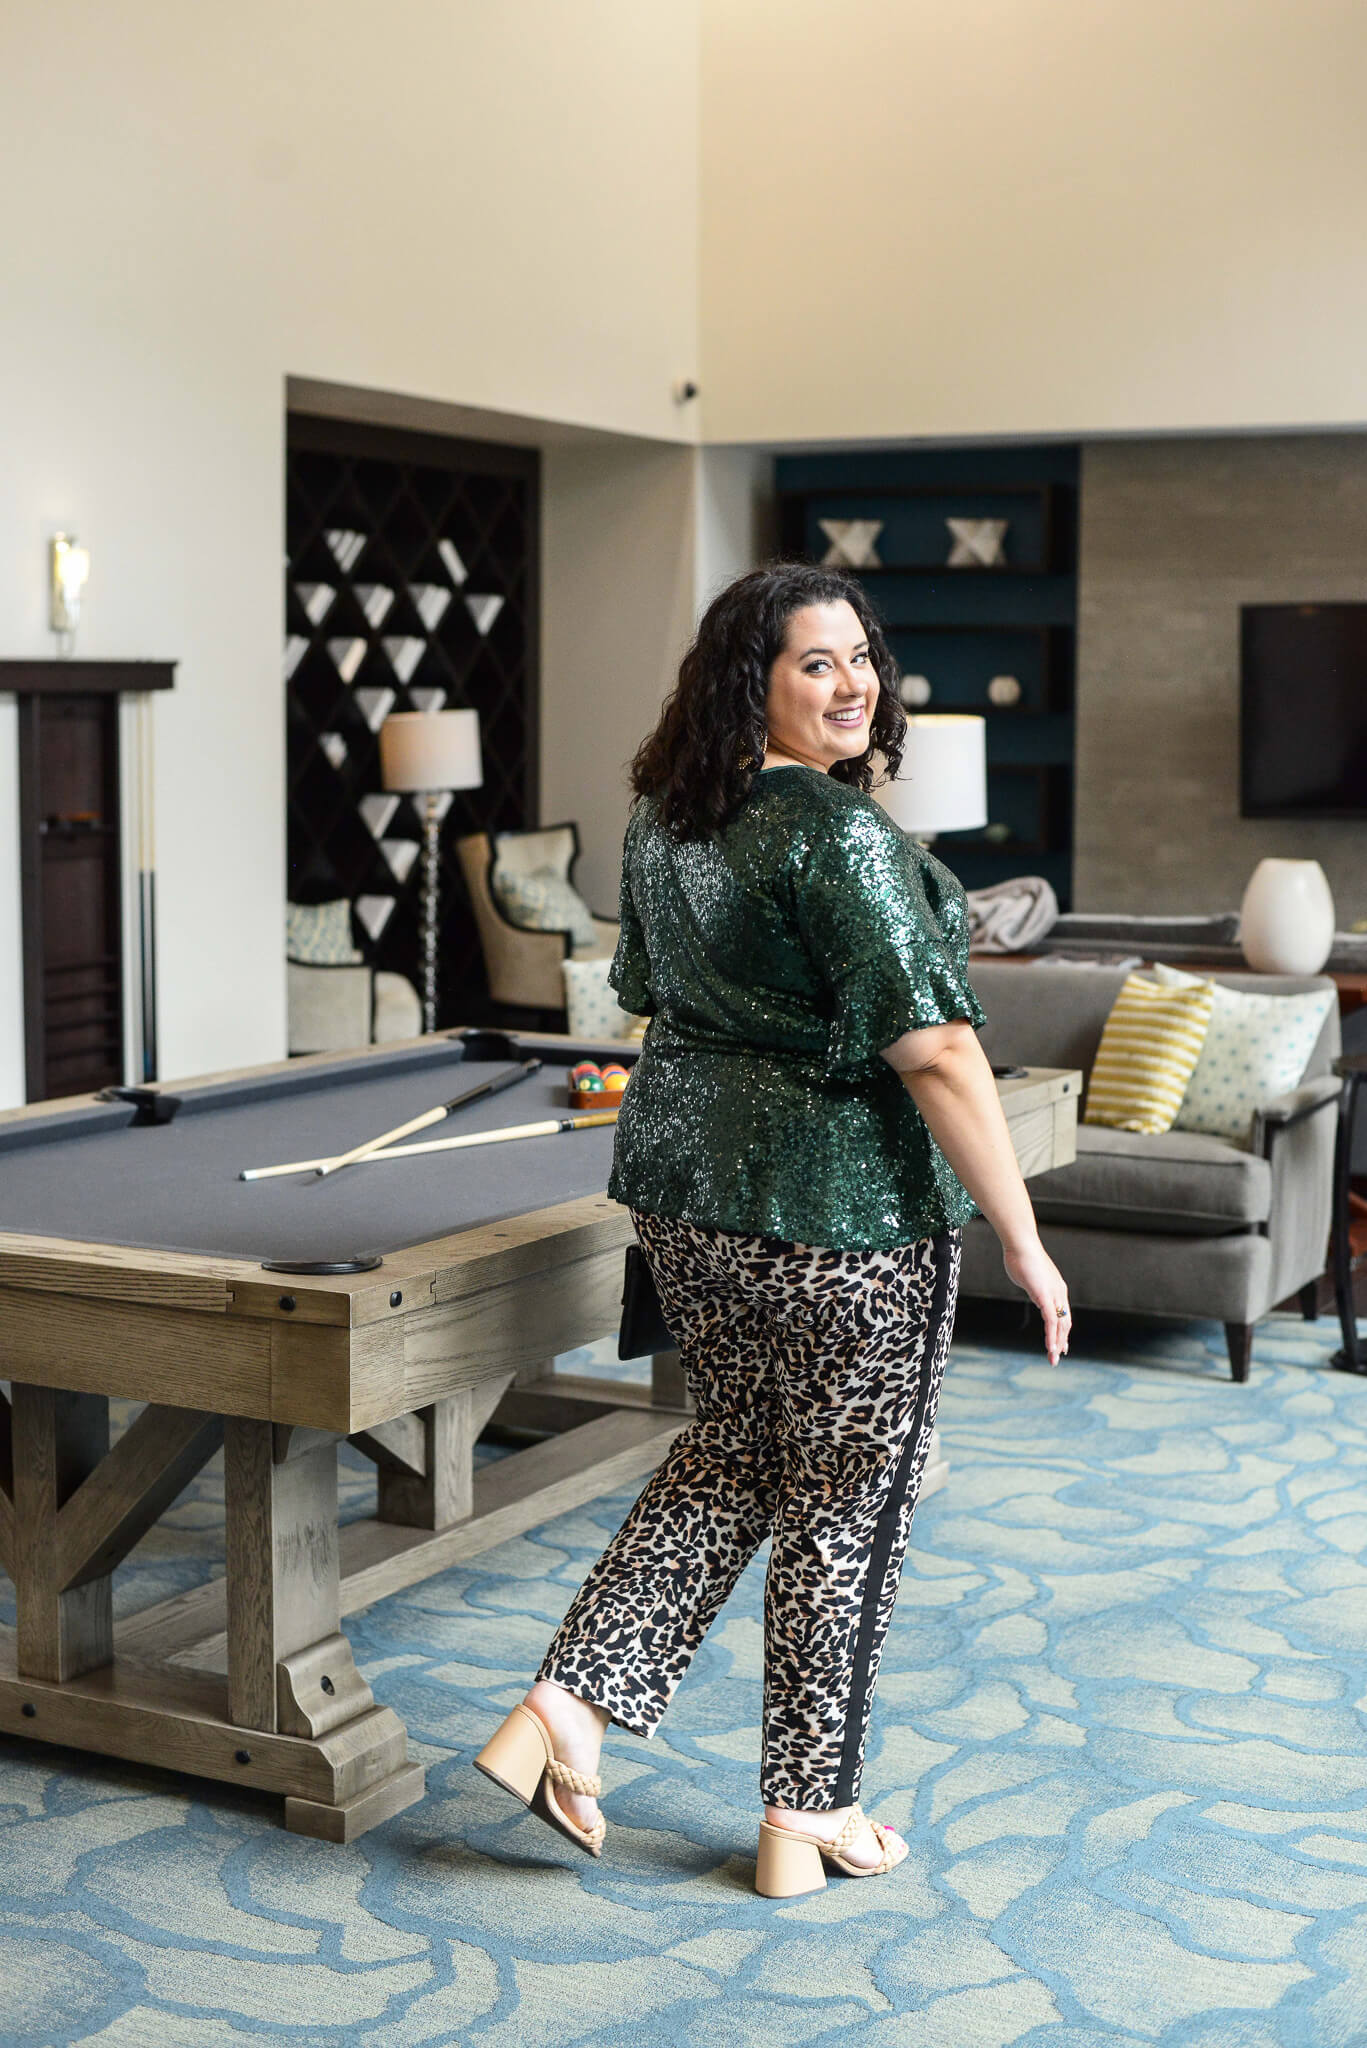 Leopard plus size pants are perfect for a girl's night out.